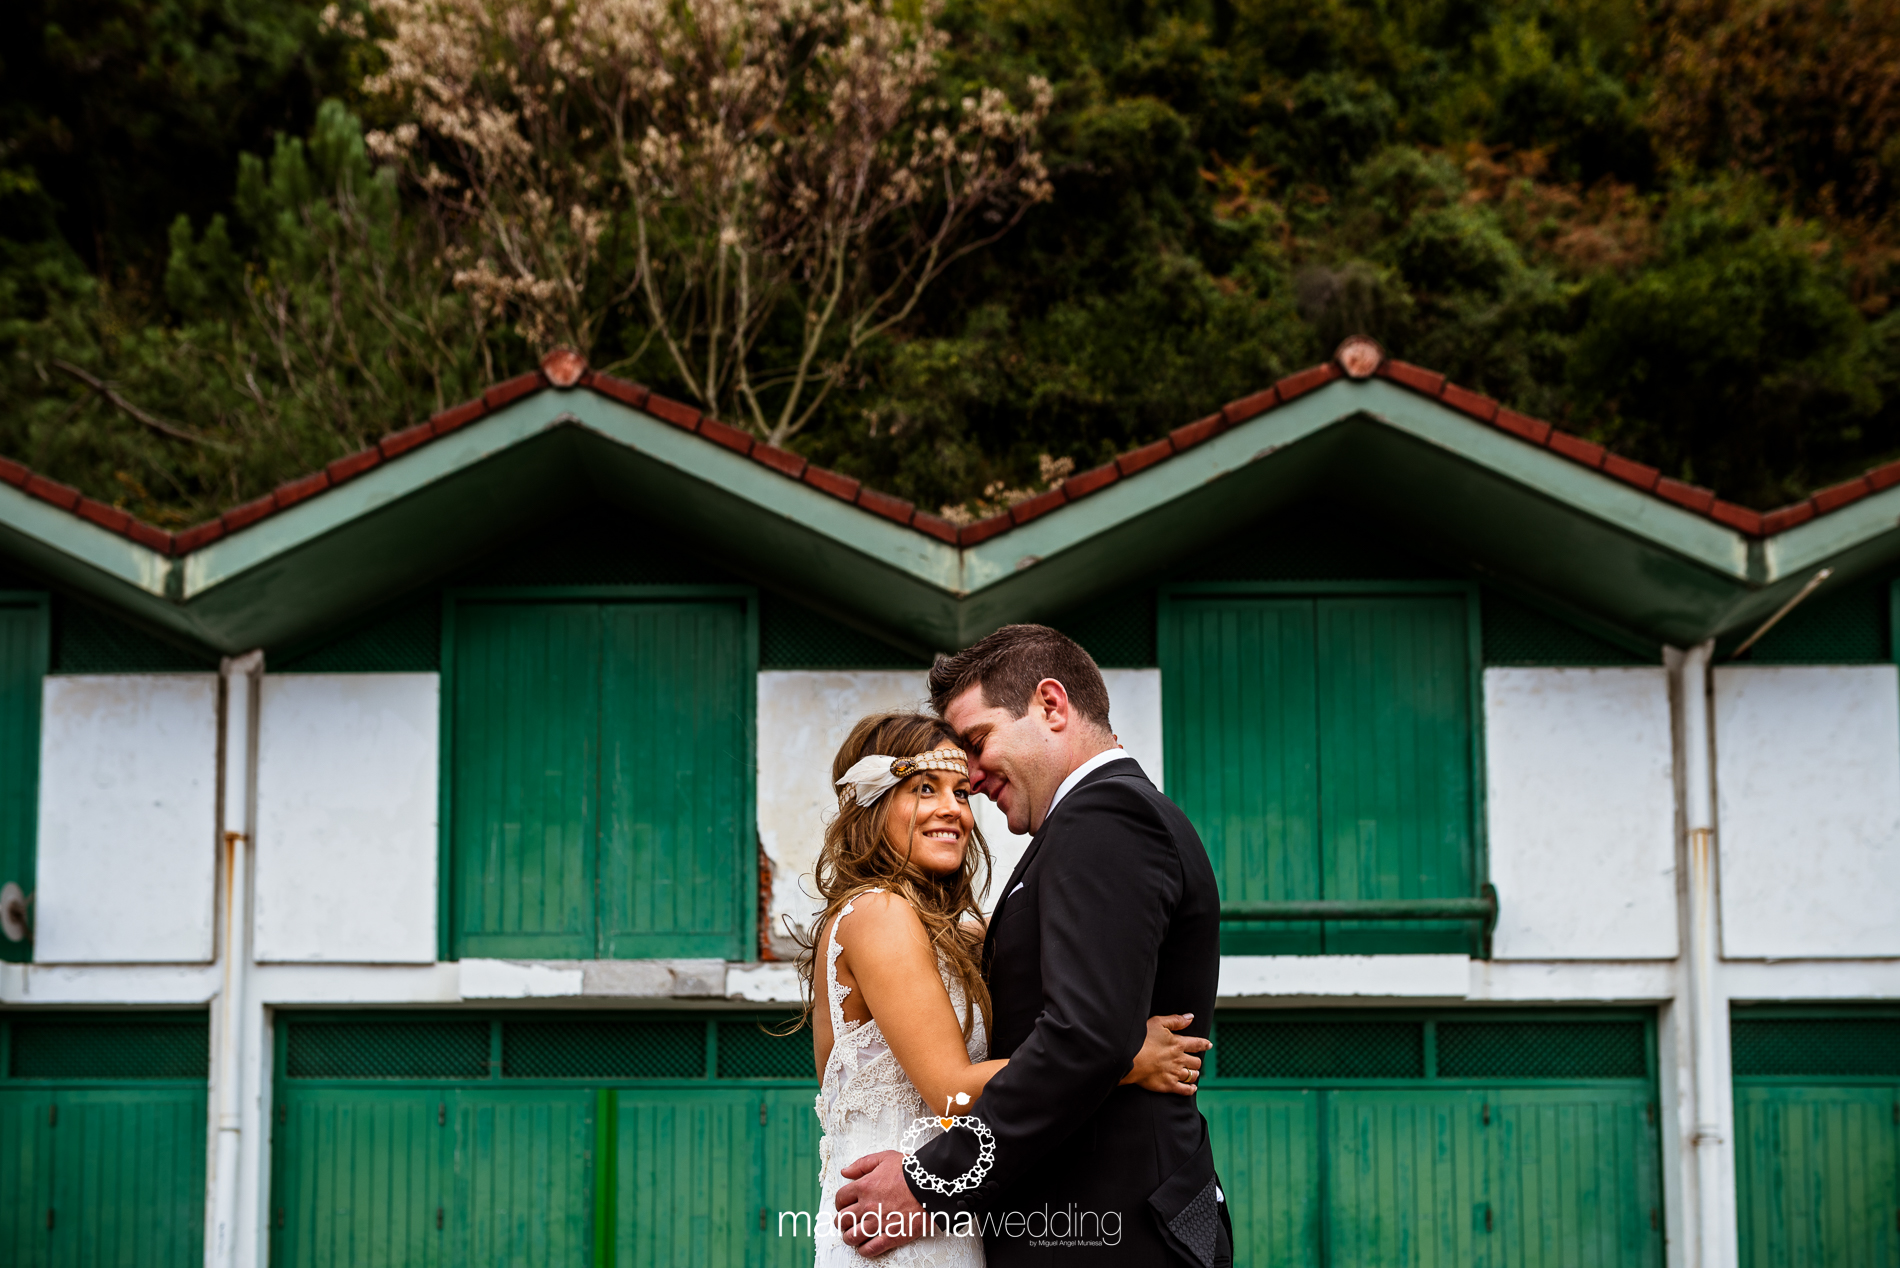 mandarina wedding_09